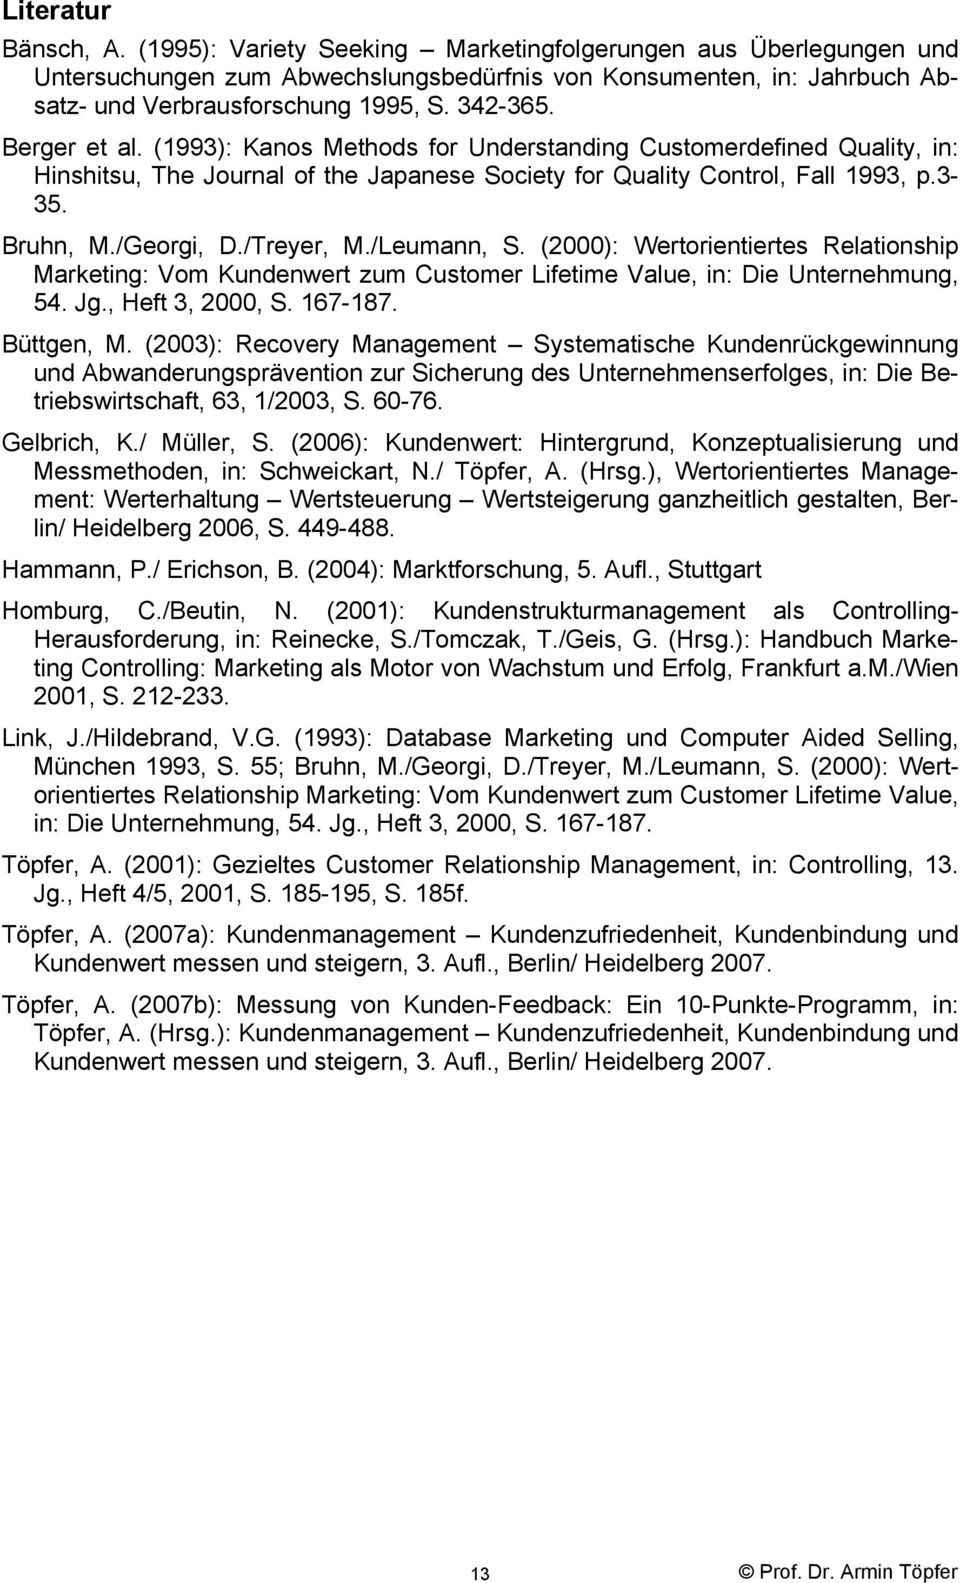 /Treyer, M./Leumann, S. (2000): Wertorientiertes Relationship Marketing: Vom Kundenwert zum Customer Lifetime Value, in: Die Unternehmung, 54. Jg., Heft 3, 2000, S. 167-187. Büttgen, M.